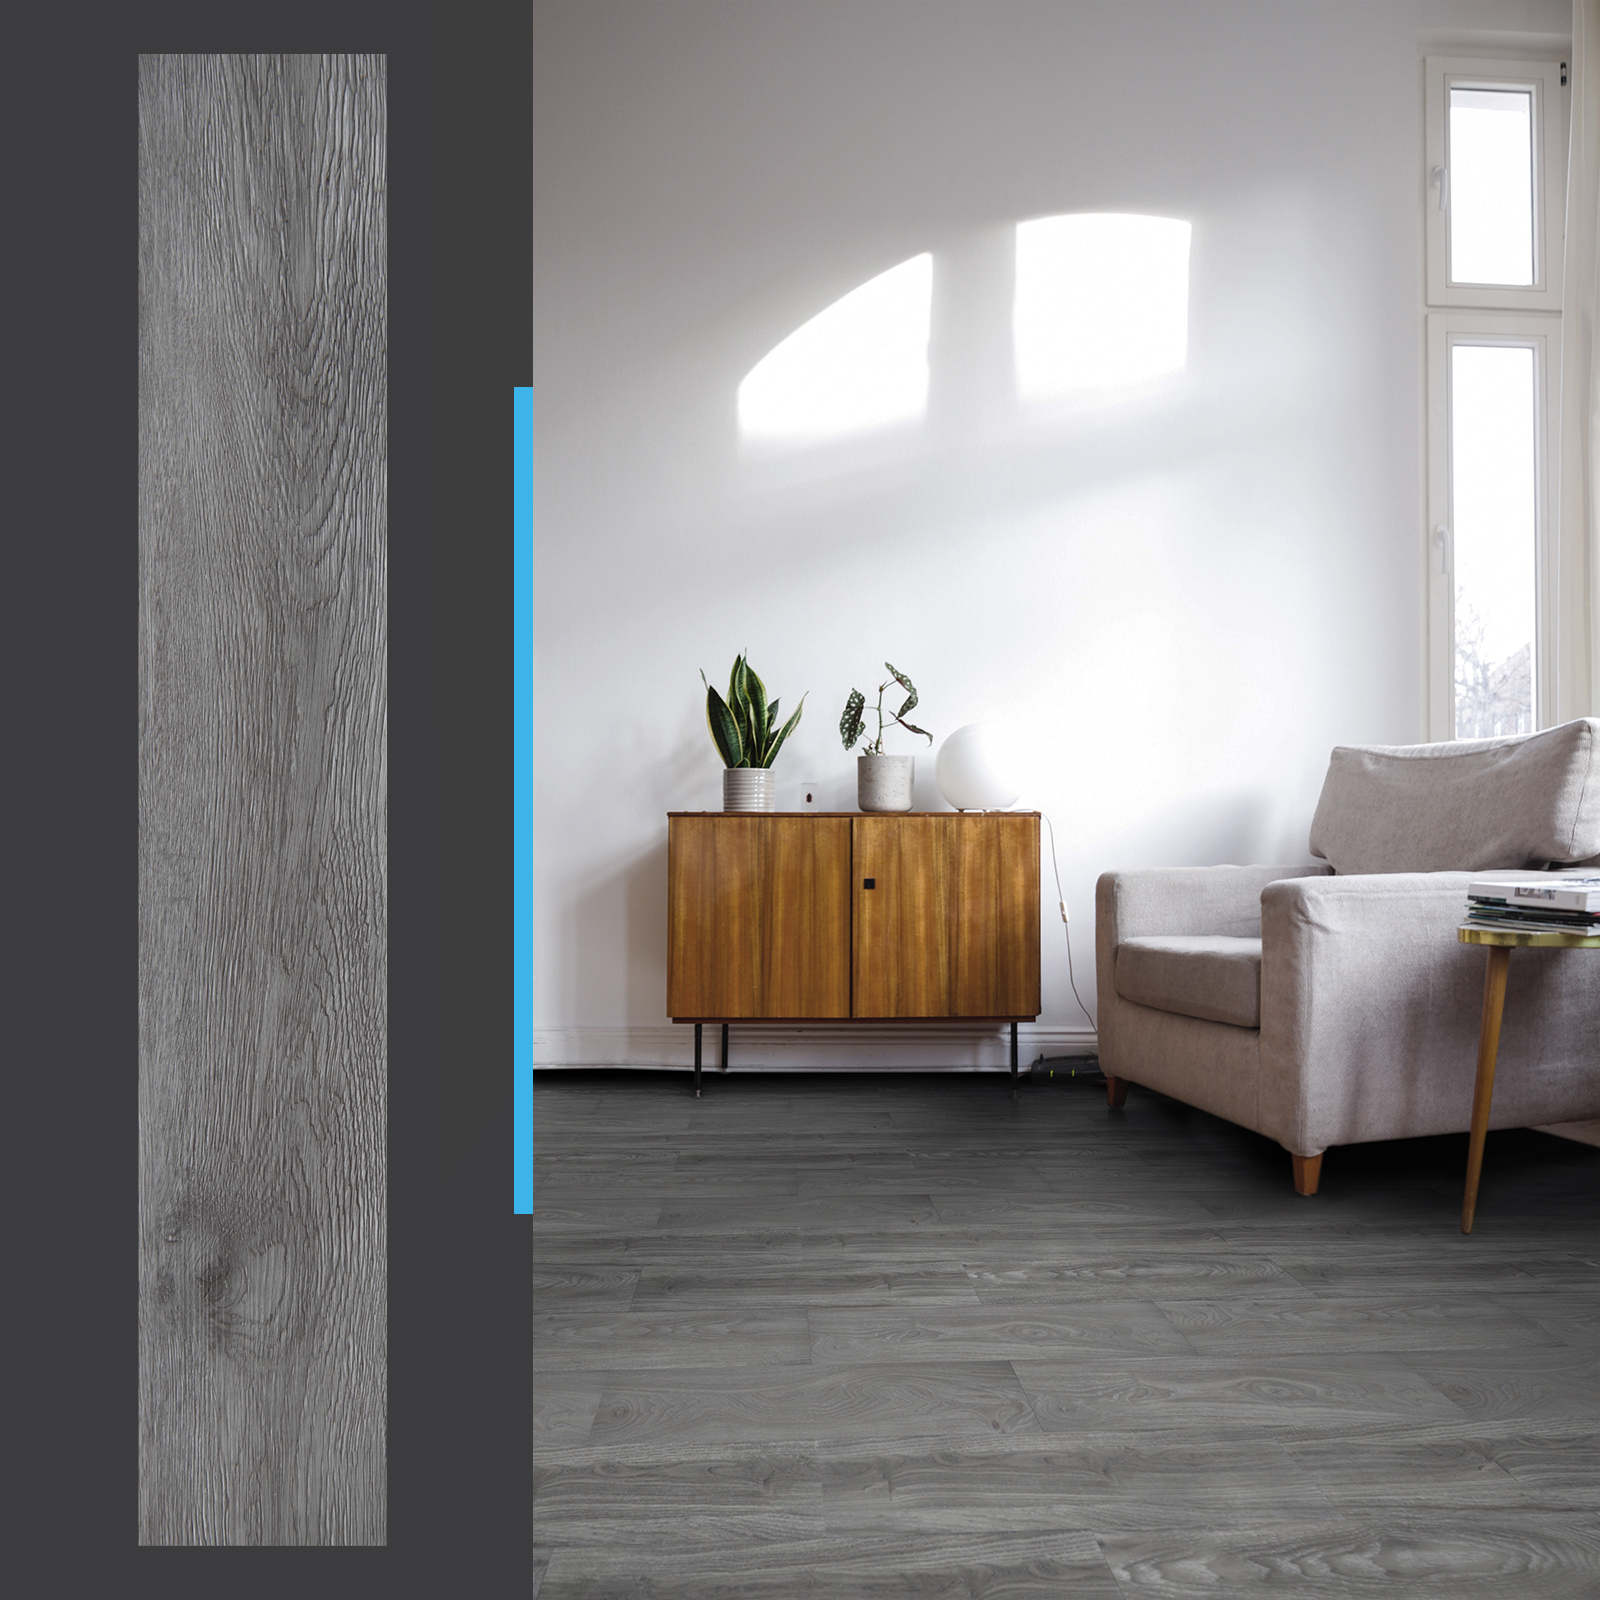 A4300-Peel-and-Stick-Floor-Tile 36 Tiles 54 Sq.Ft